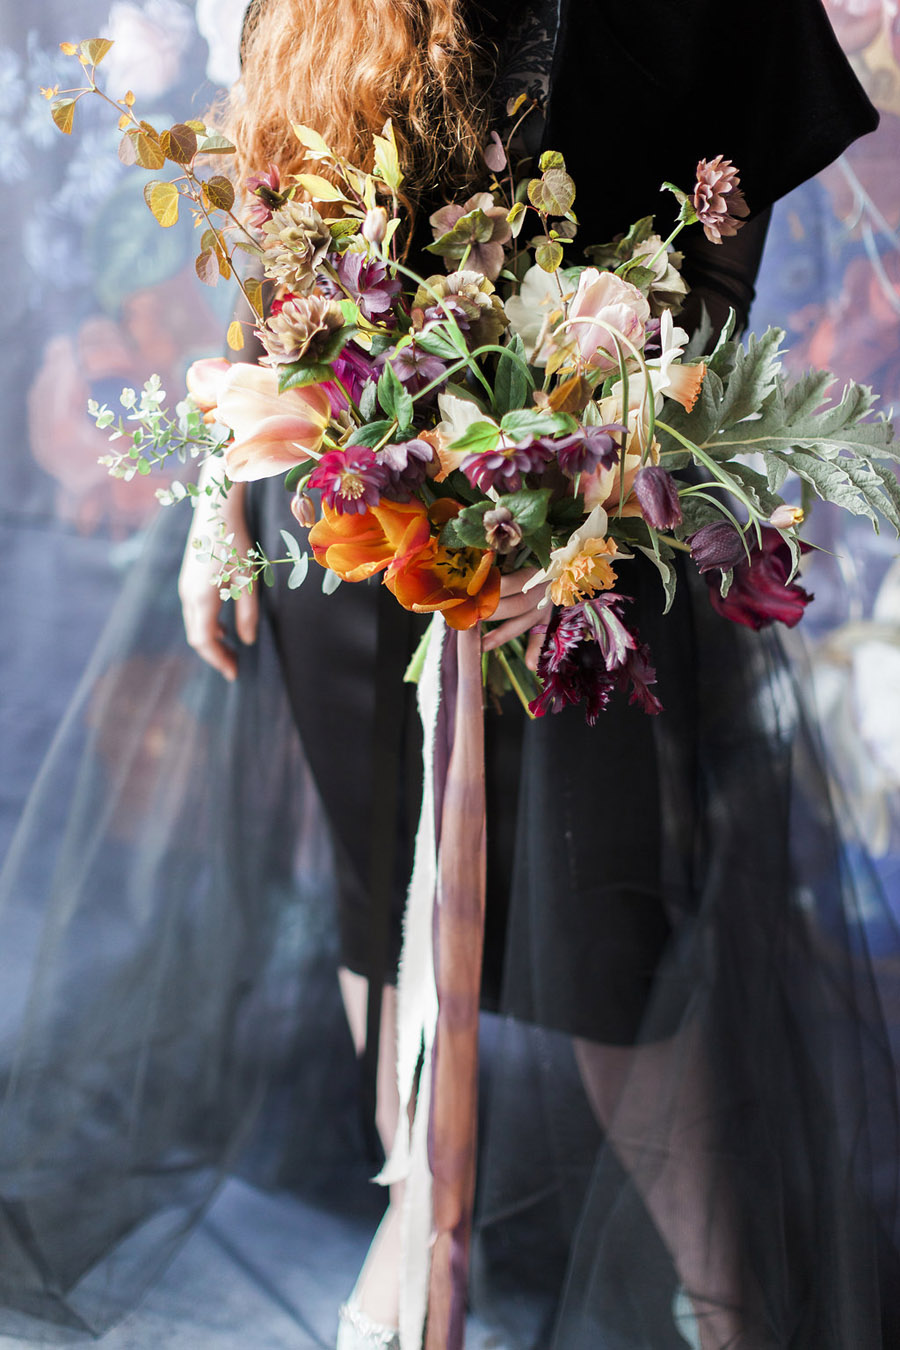 Dark Floral wedding ideas, alternative wedding styling, photo credit Jo Bradbury (20)